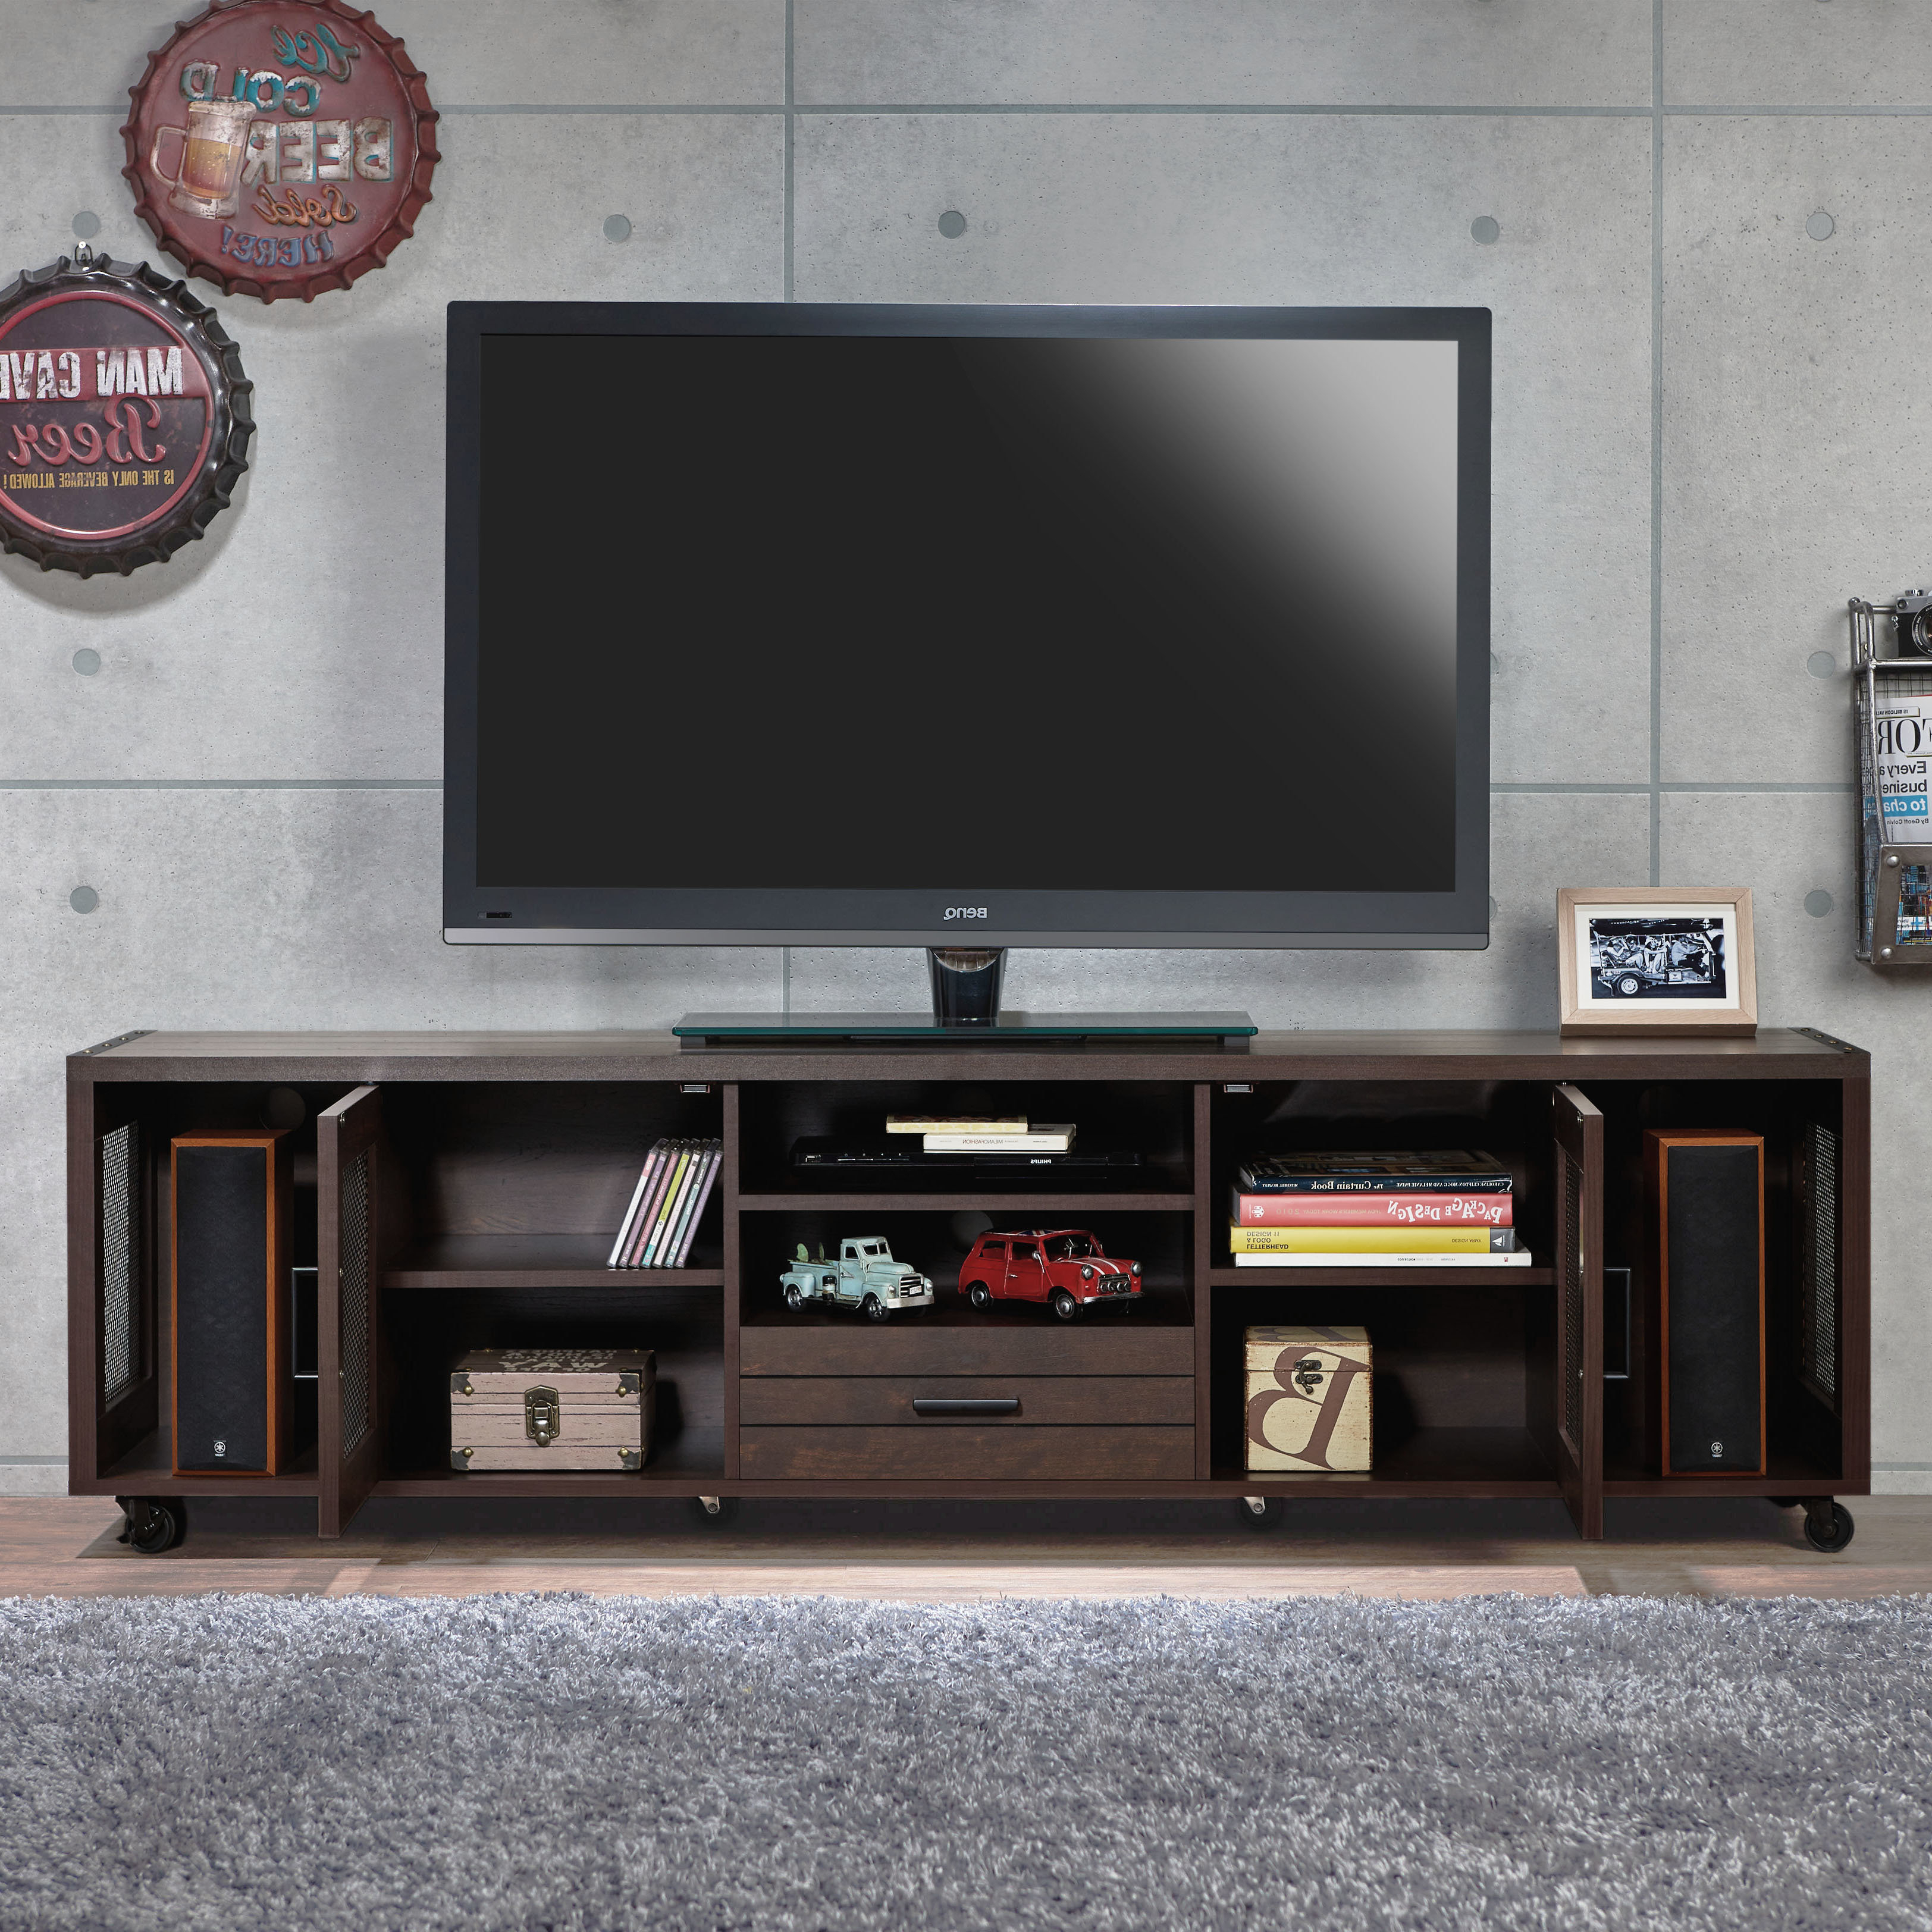 Fashionable Wayfair Tv Stands 55 Inch Corner On Sale 60 Stand With Fireplace Throughout Wayfair Corner Tv Stands (Gallery 13 of 20)